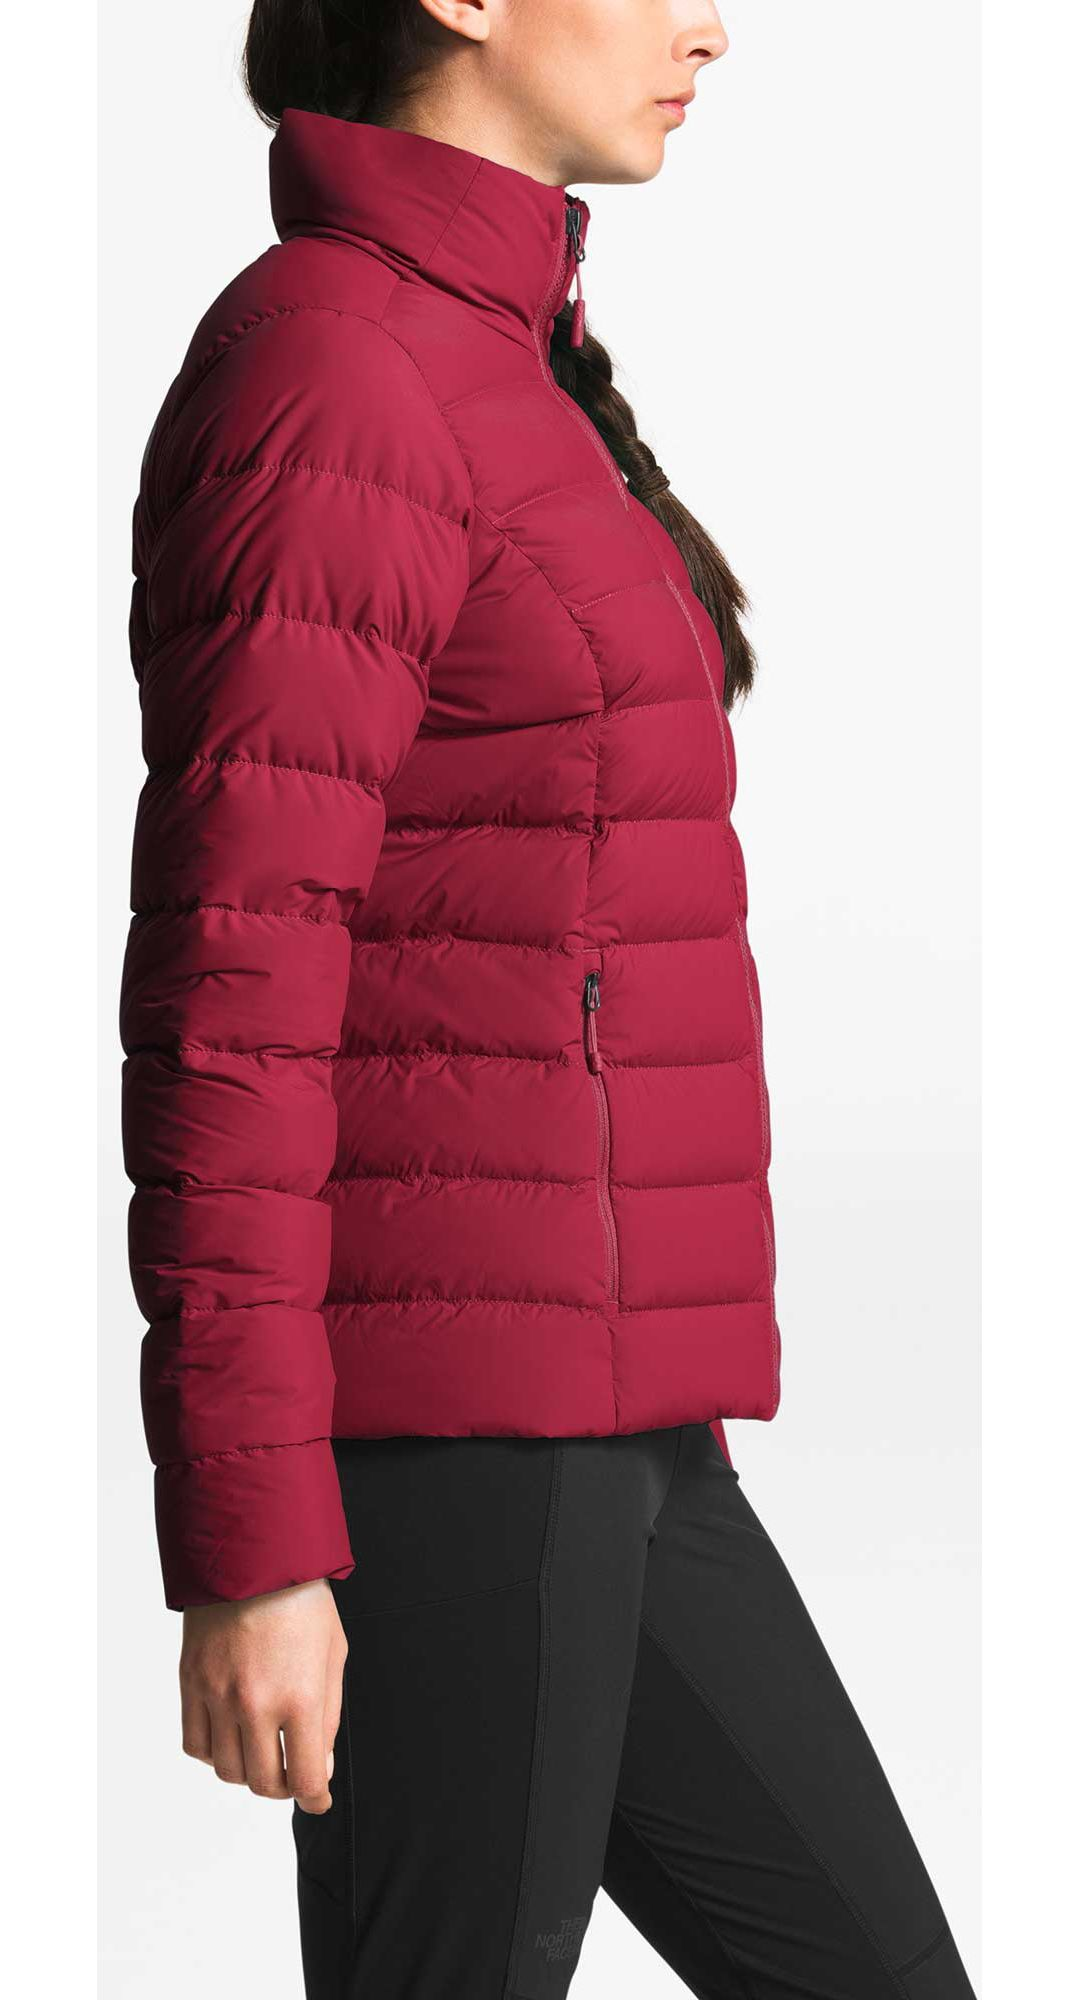 904fe9a4f The North Face Women's Stretch Down Jacket